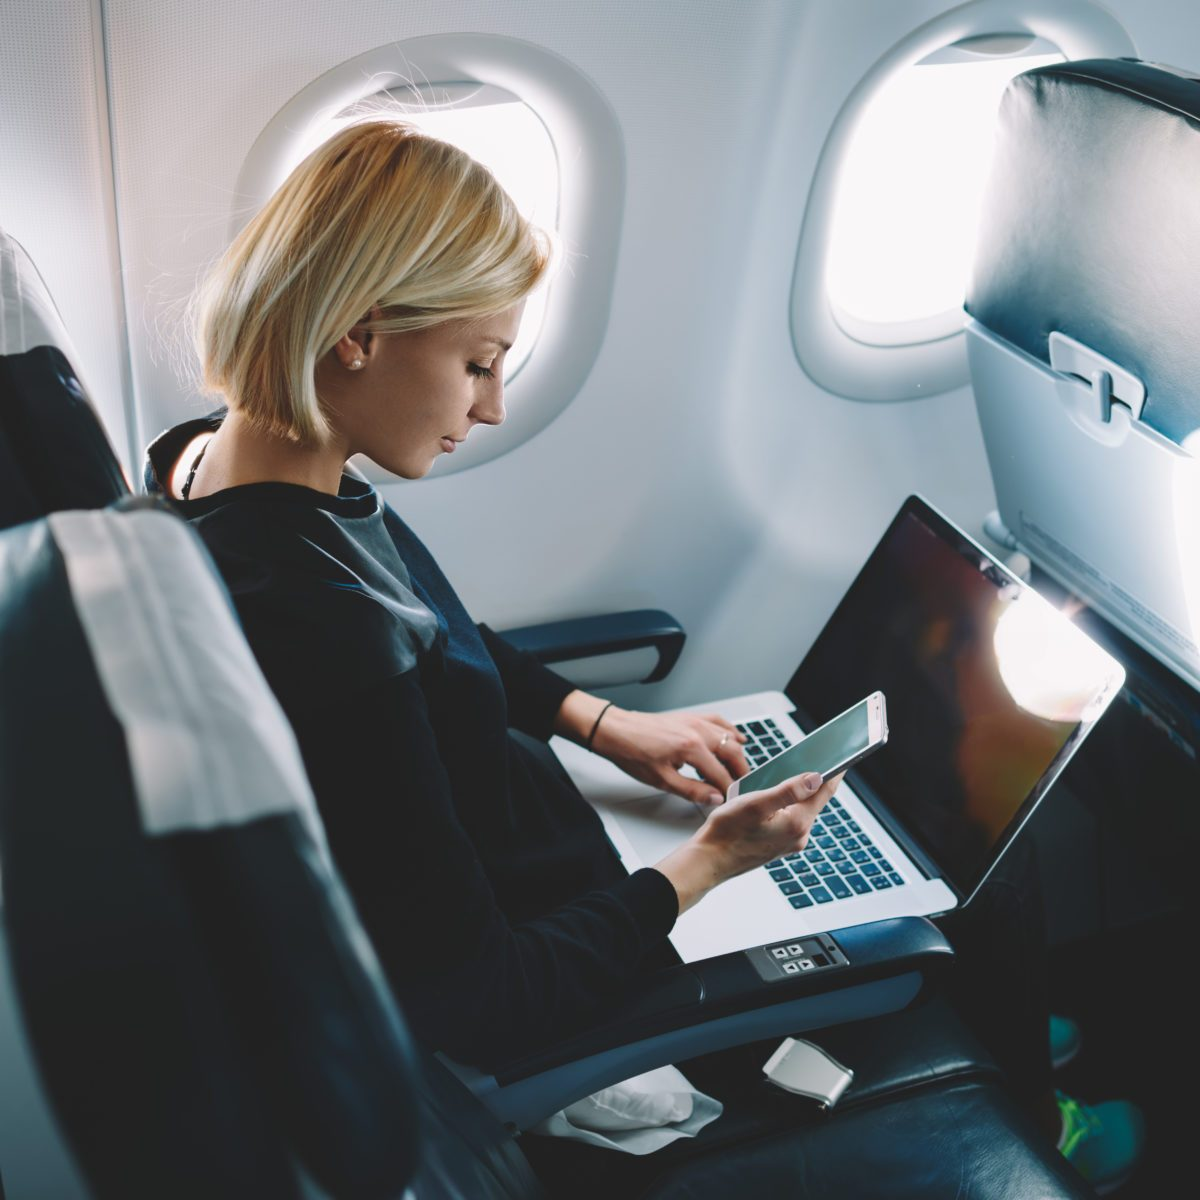 How Does Inflight Wifi Work, Anyway?